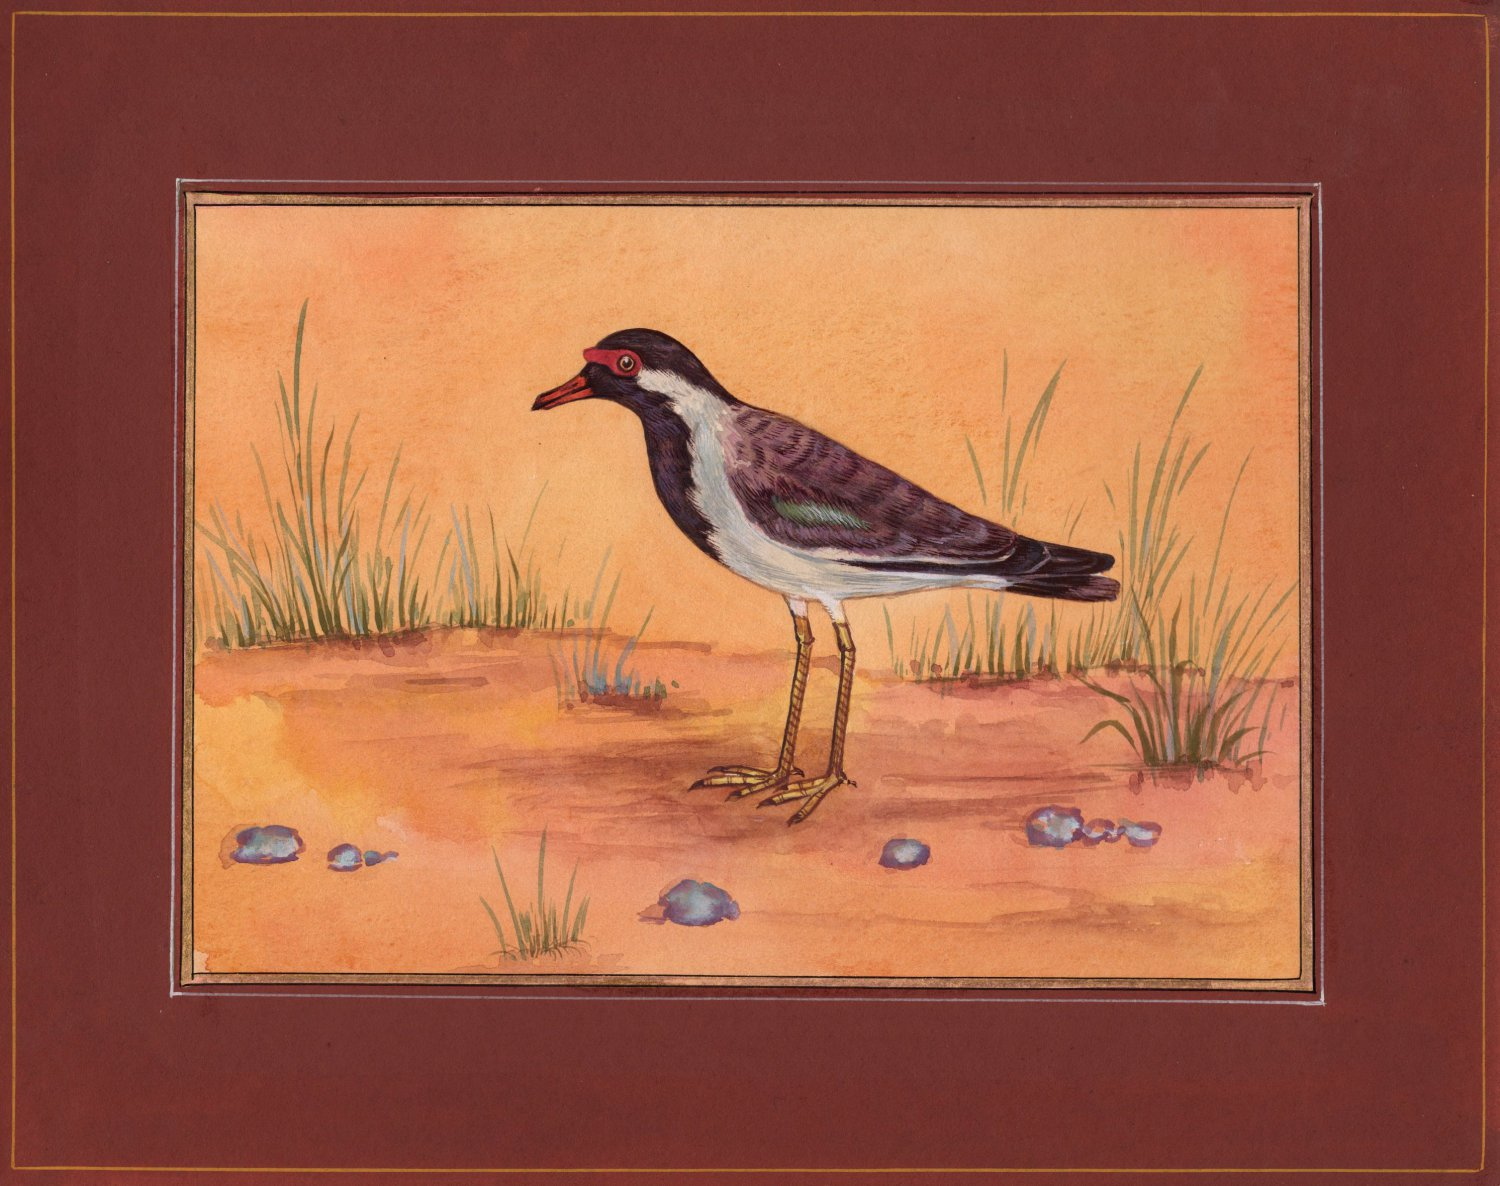 Red Wattled Lapwing Bird Miniature Painting Handmade Indian Watercolor Paper Art